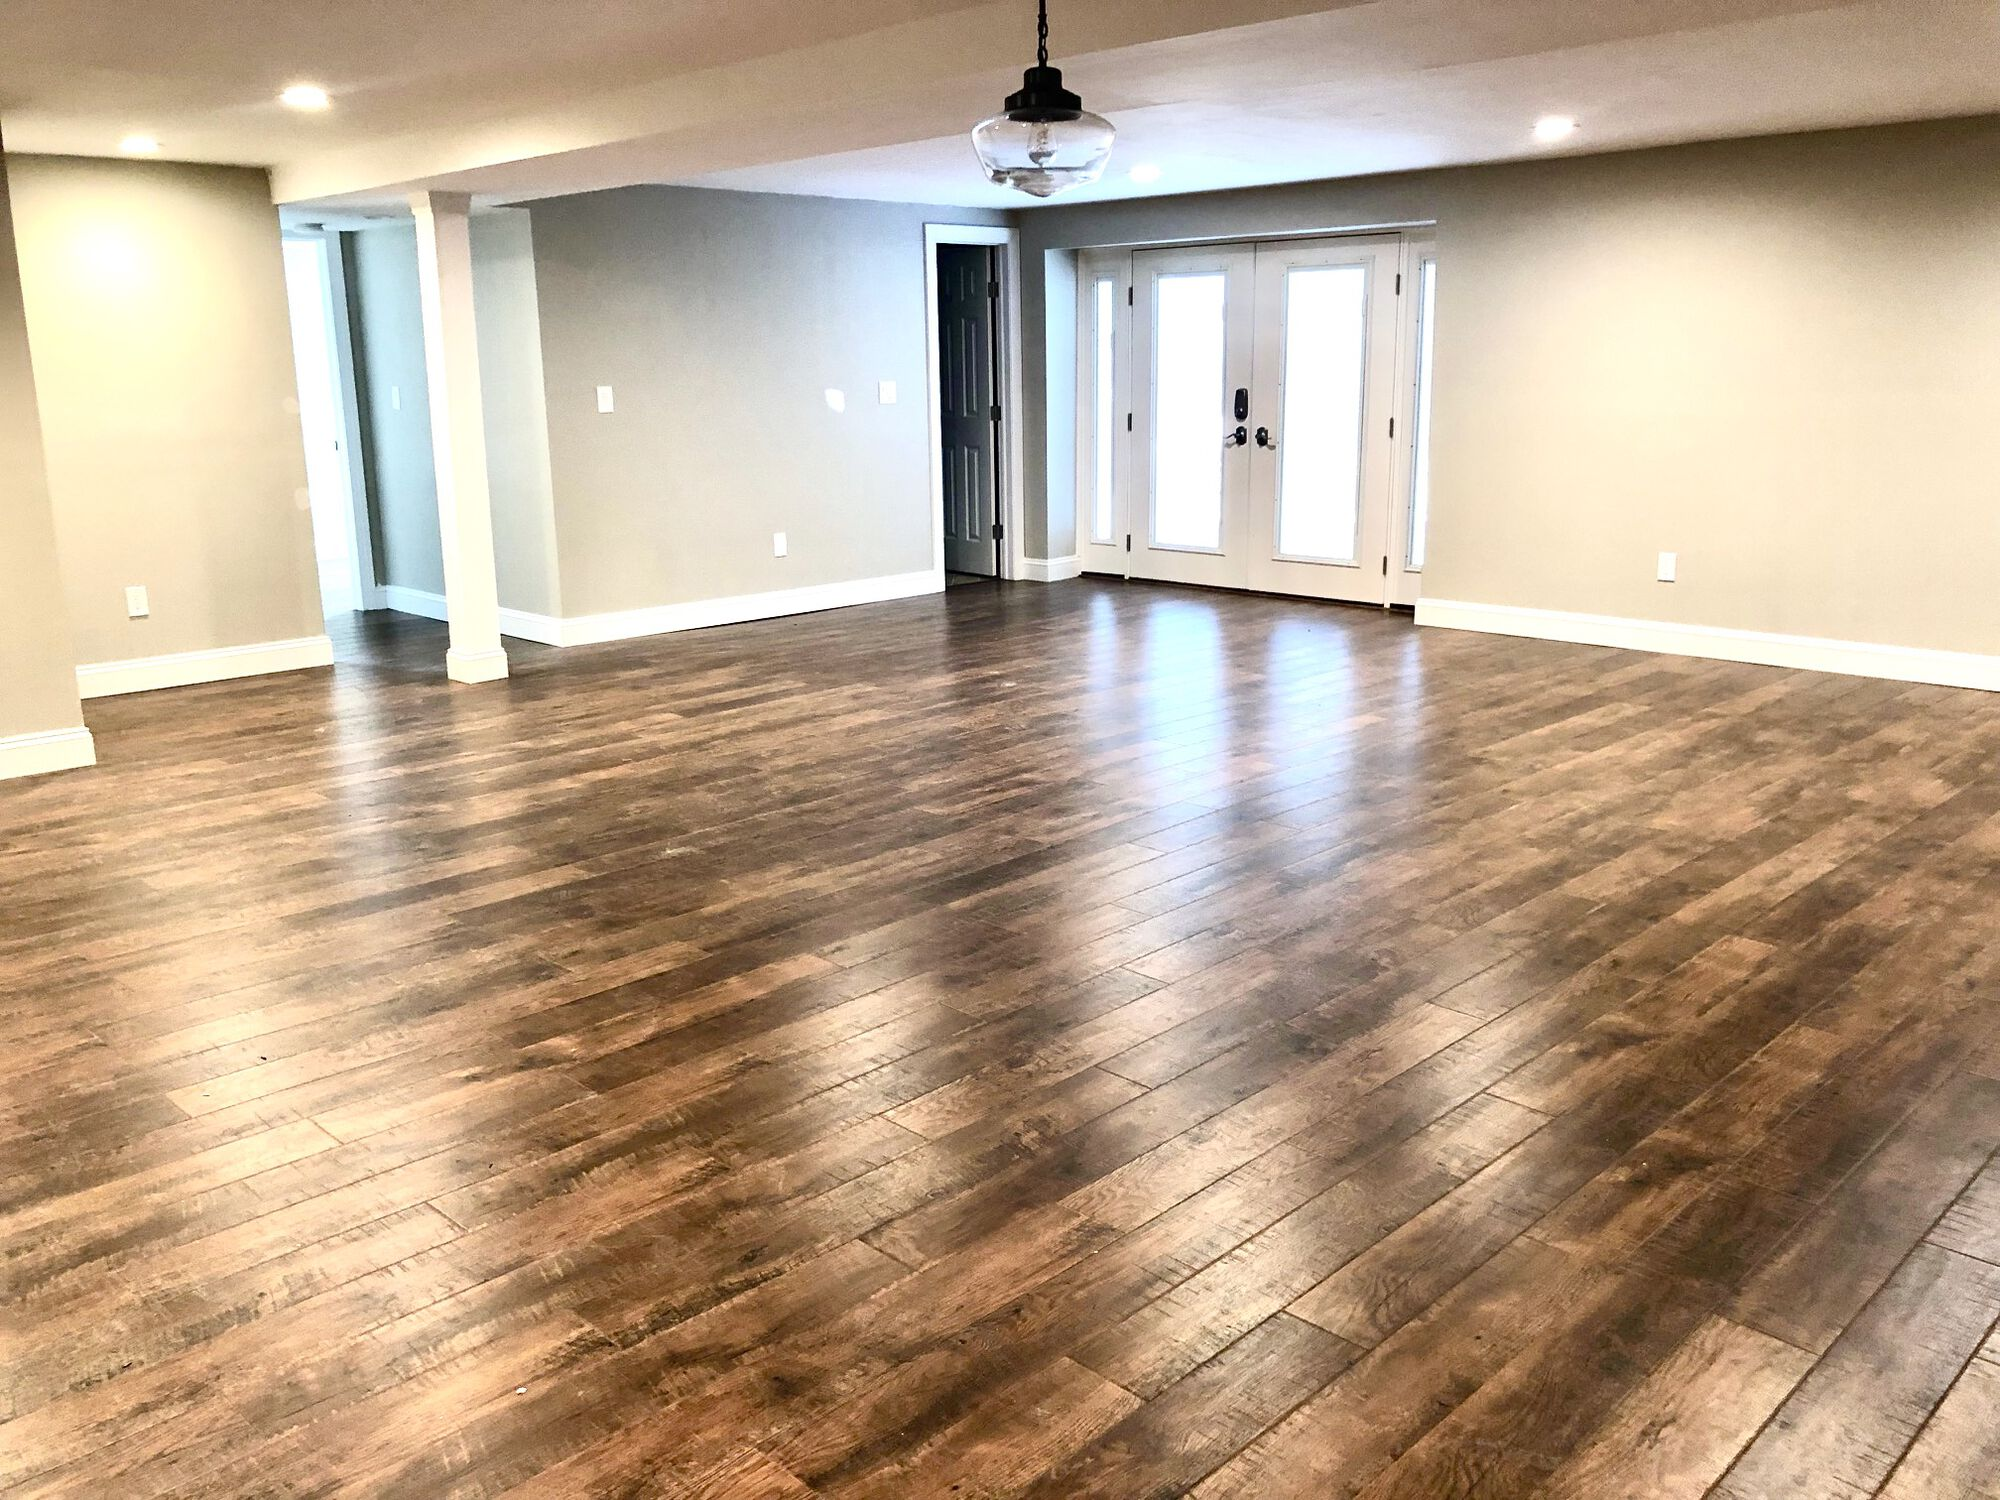 Finished Basement with Bath, Laundry, French Doors to Yard in Little Falls, Essex County NJ